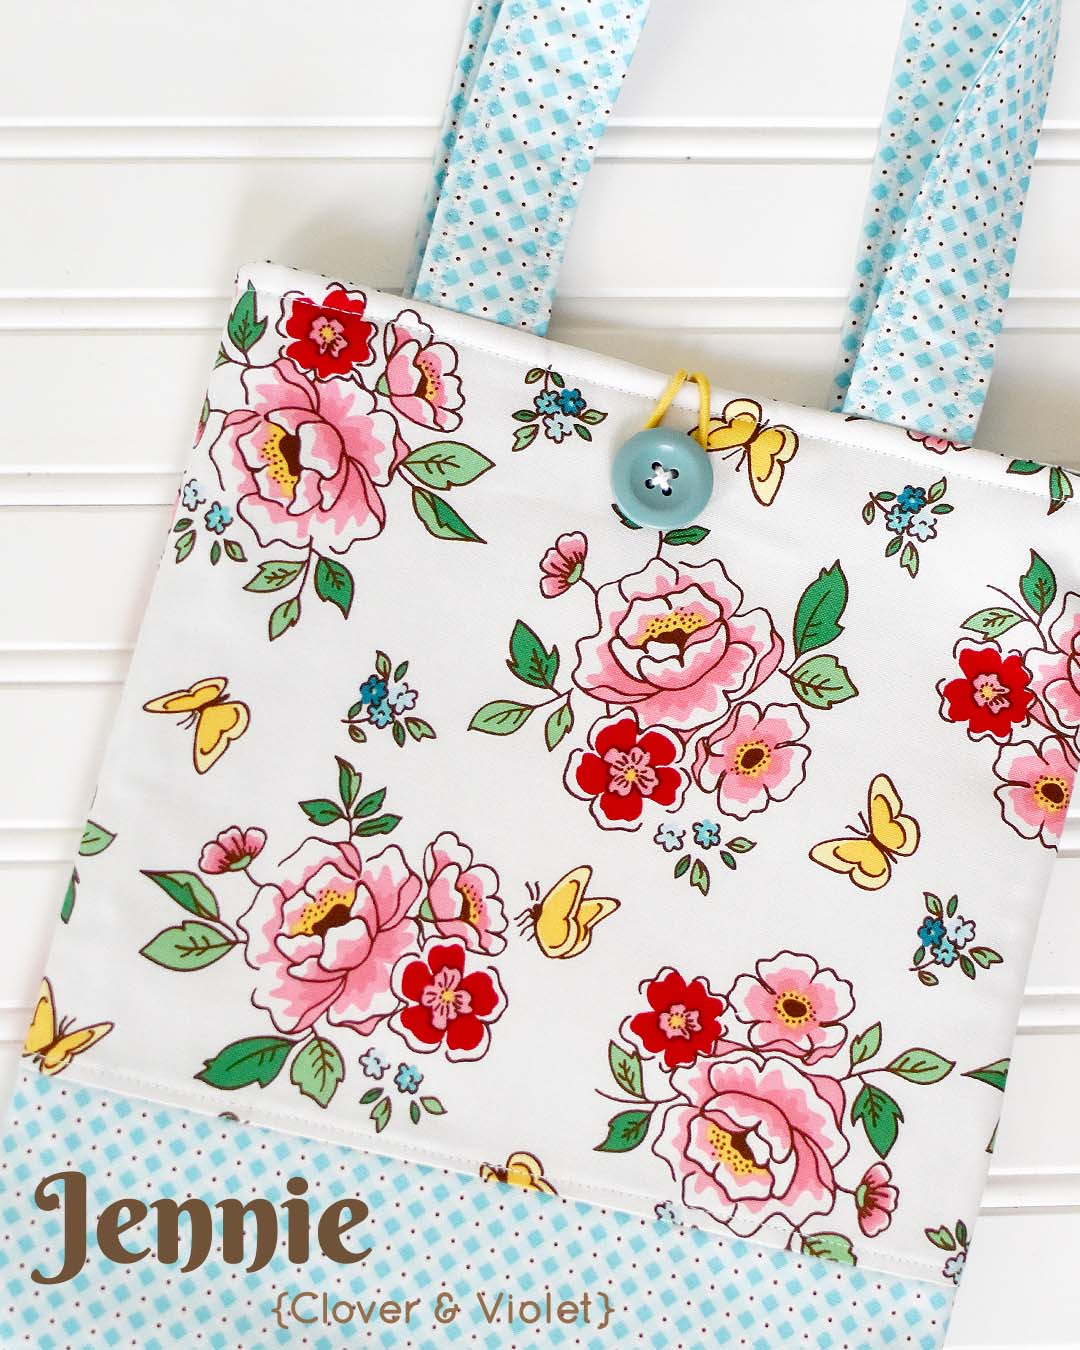 Mon Beau Jardin Blog Tour - Katie Book Sleeve Bag by Jennie of Clover & Violet